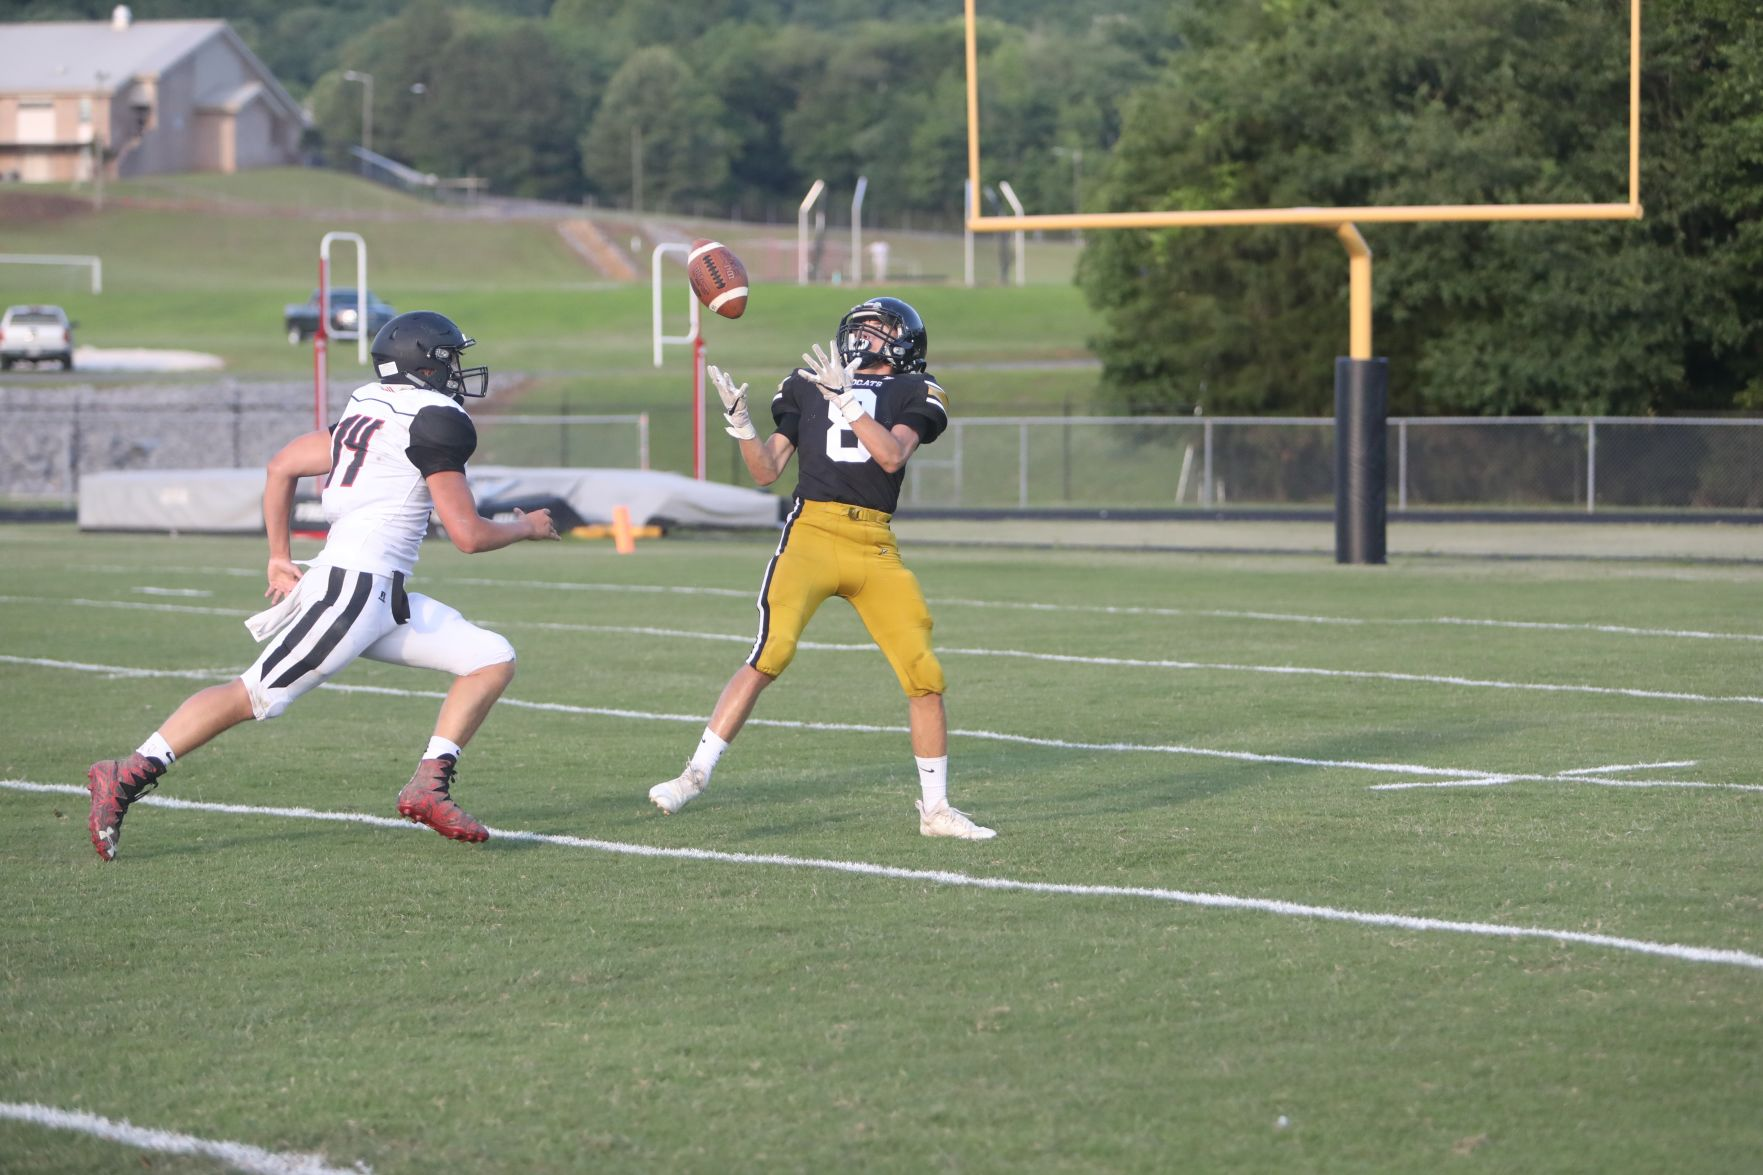 'Cats cap off spring with shutout win in jamboree